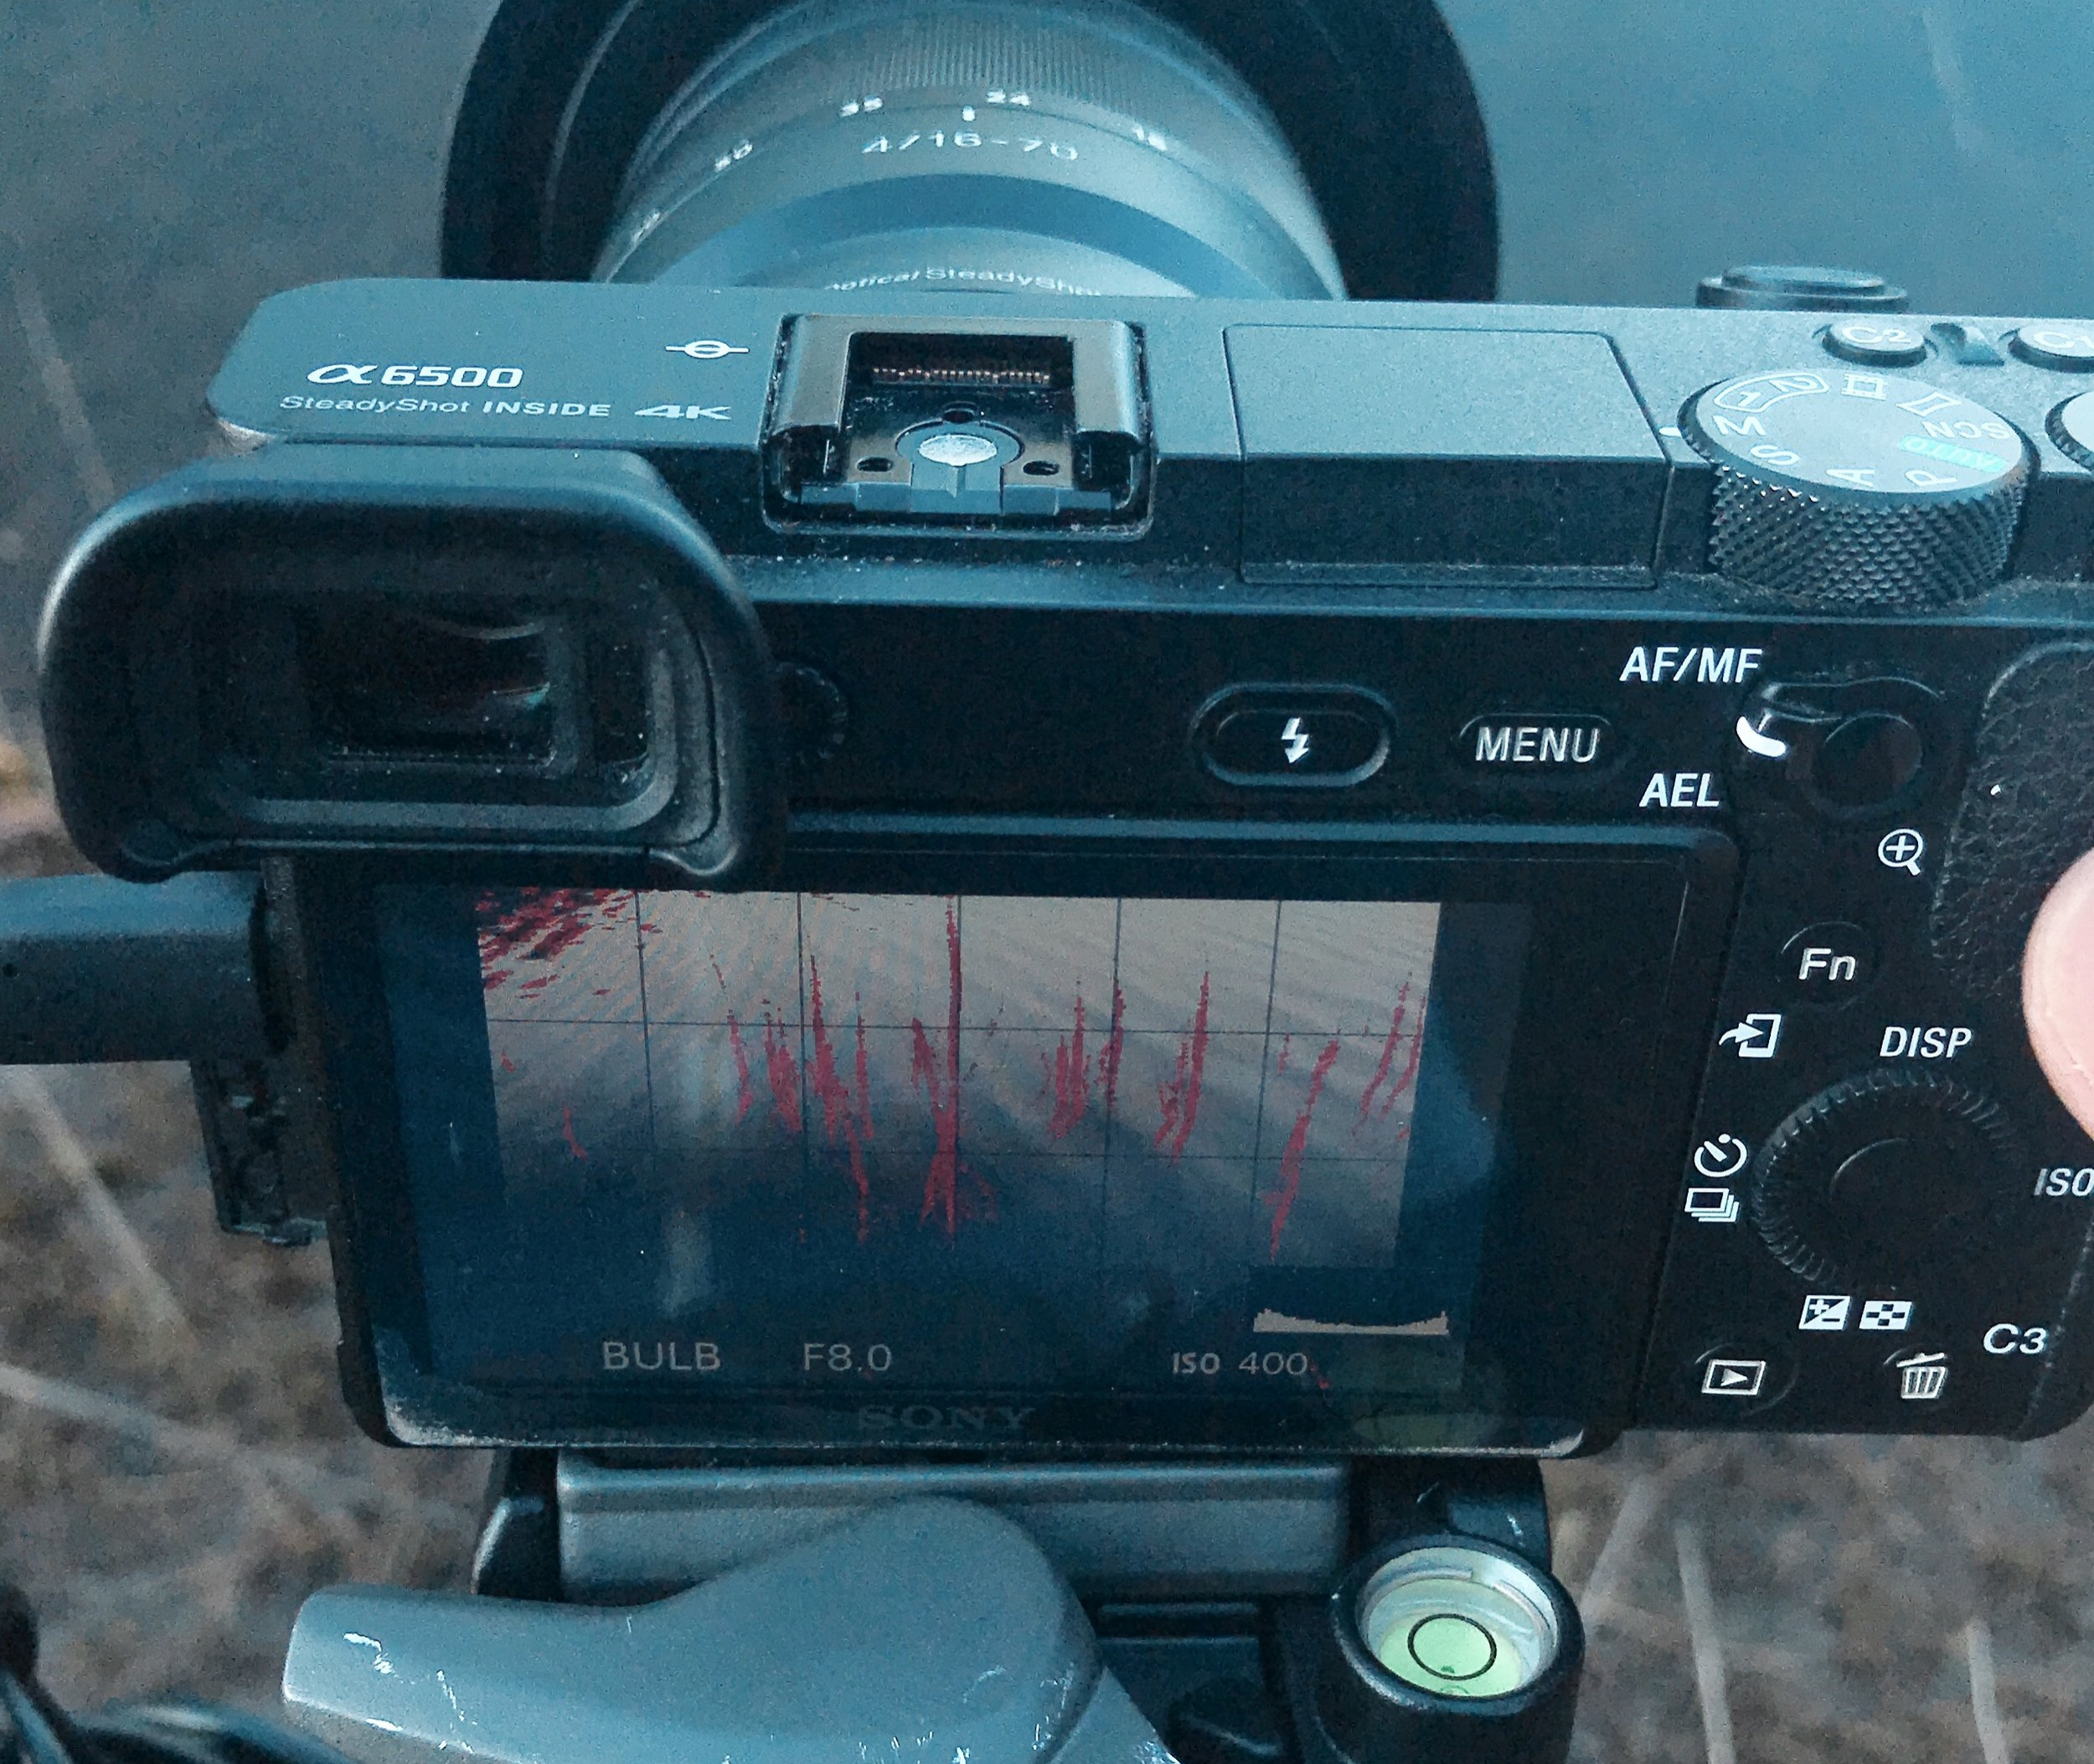 Switch to manual focus to prevent refocusing during the long exposure.